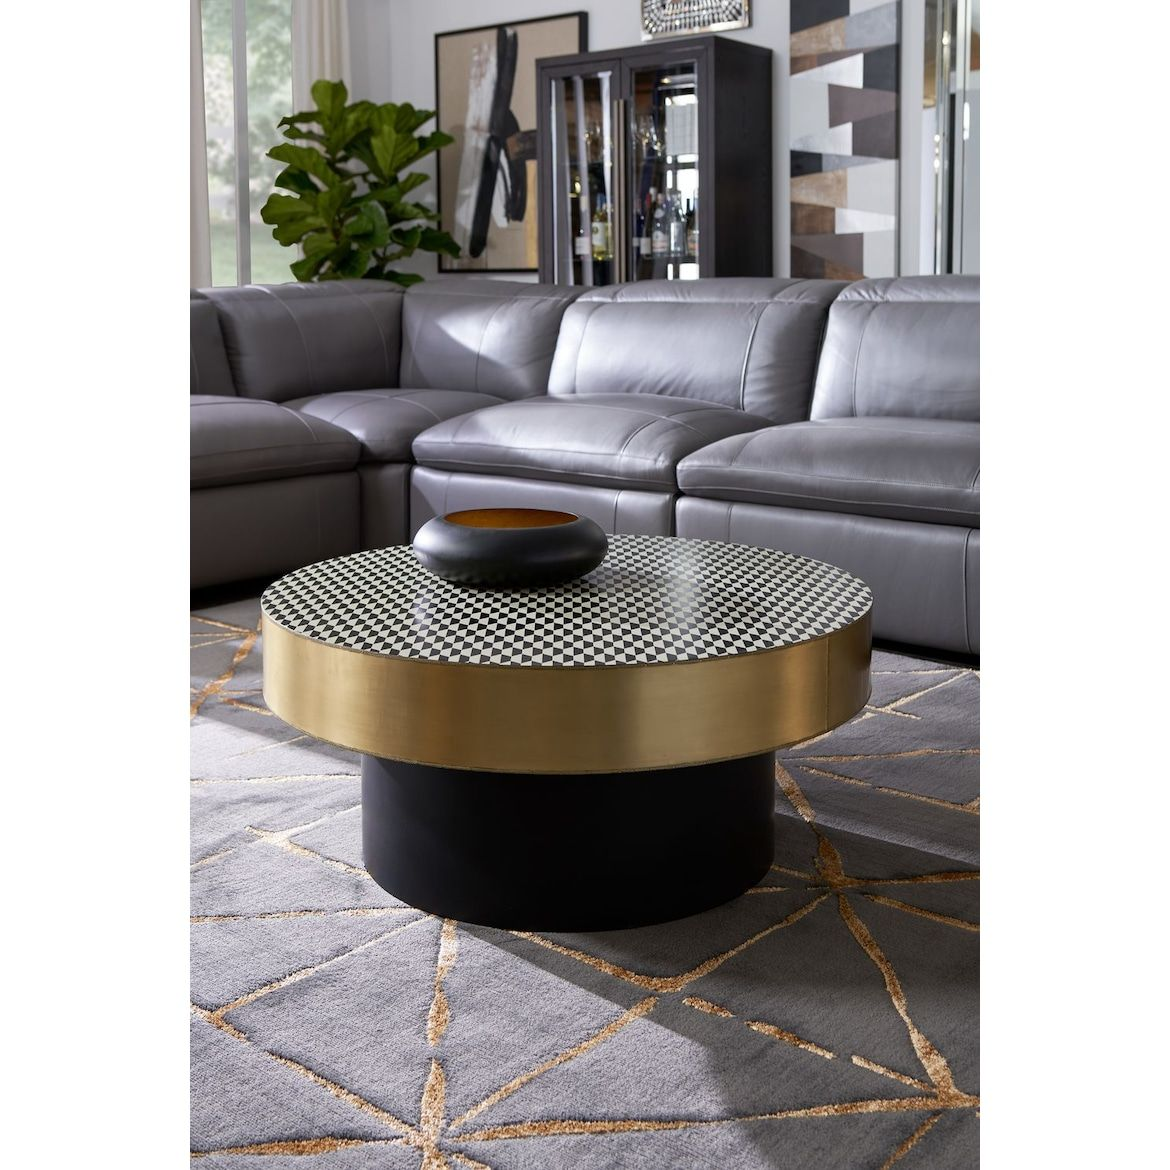 Optic Coffee Table Value City Furniture And Mattresses Coffee Table Living Room Decor Furniture Arranging Bedroom Furniture [ 1170 x 1170 Pixel ]